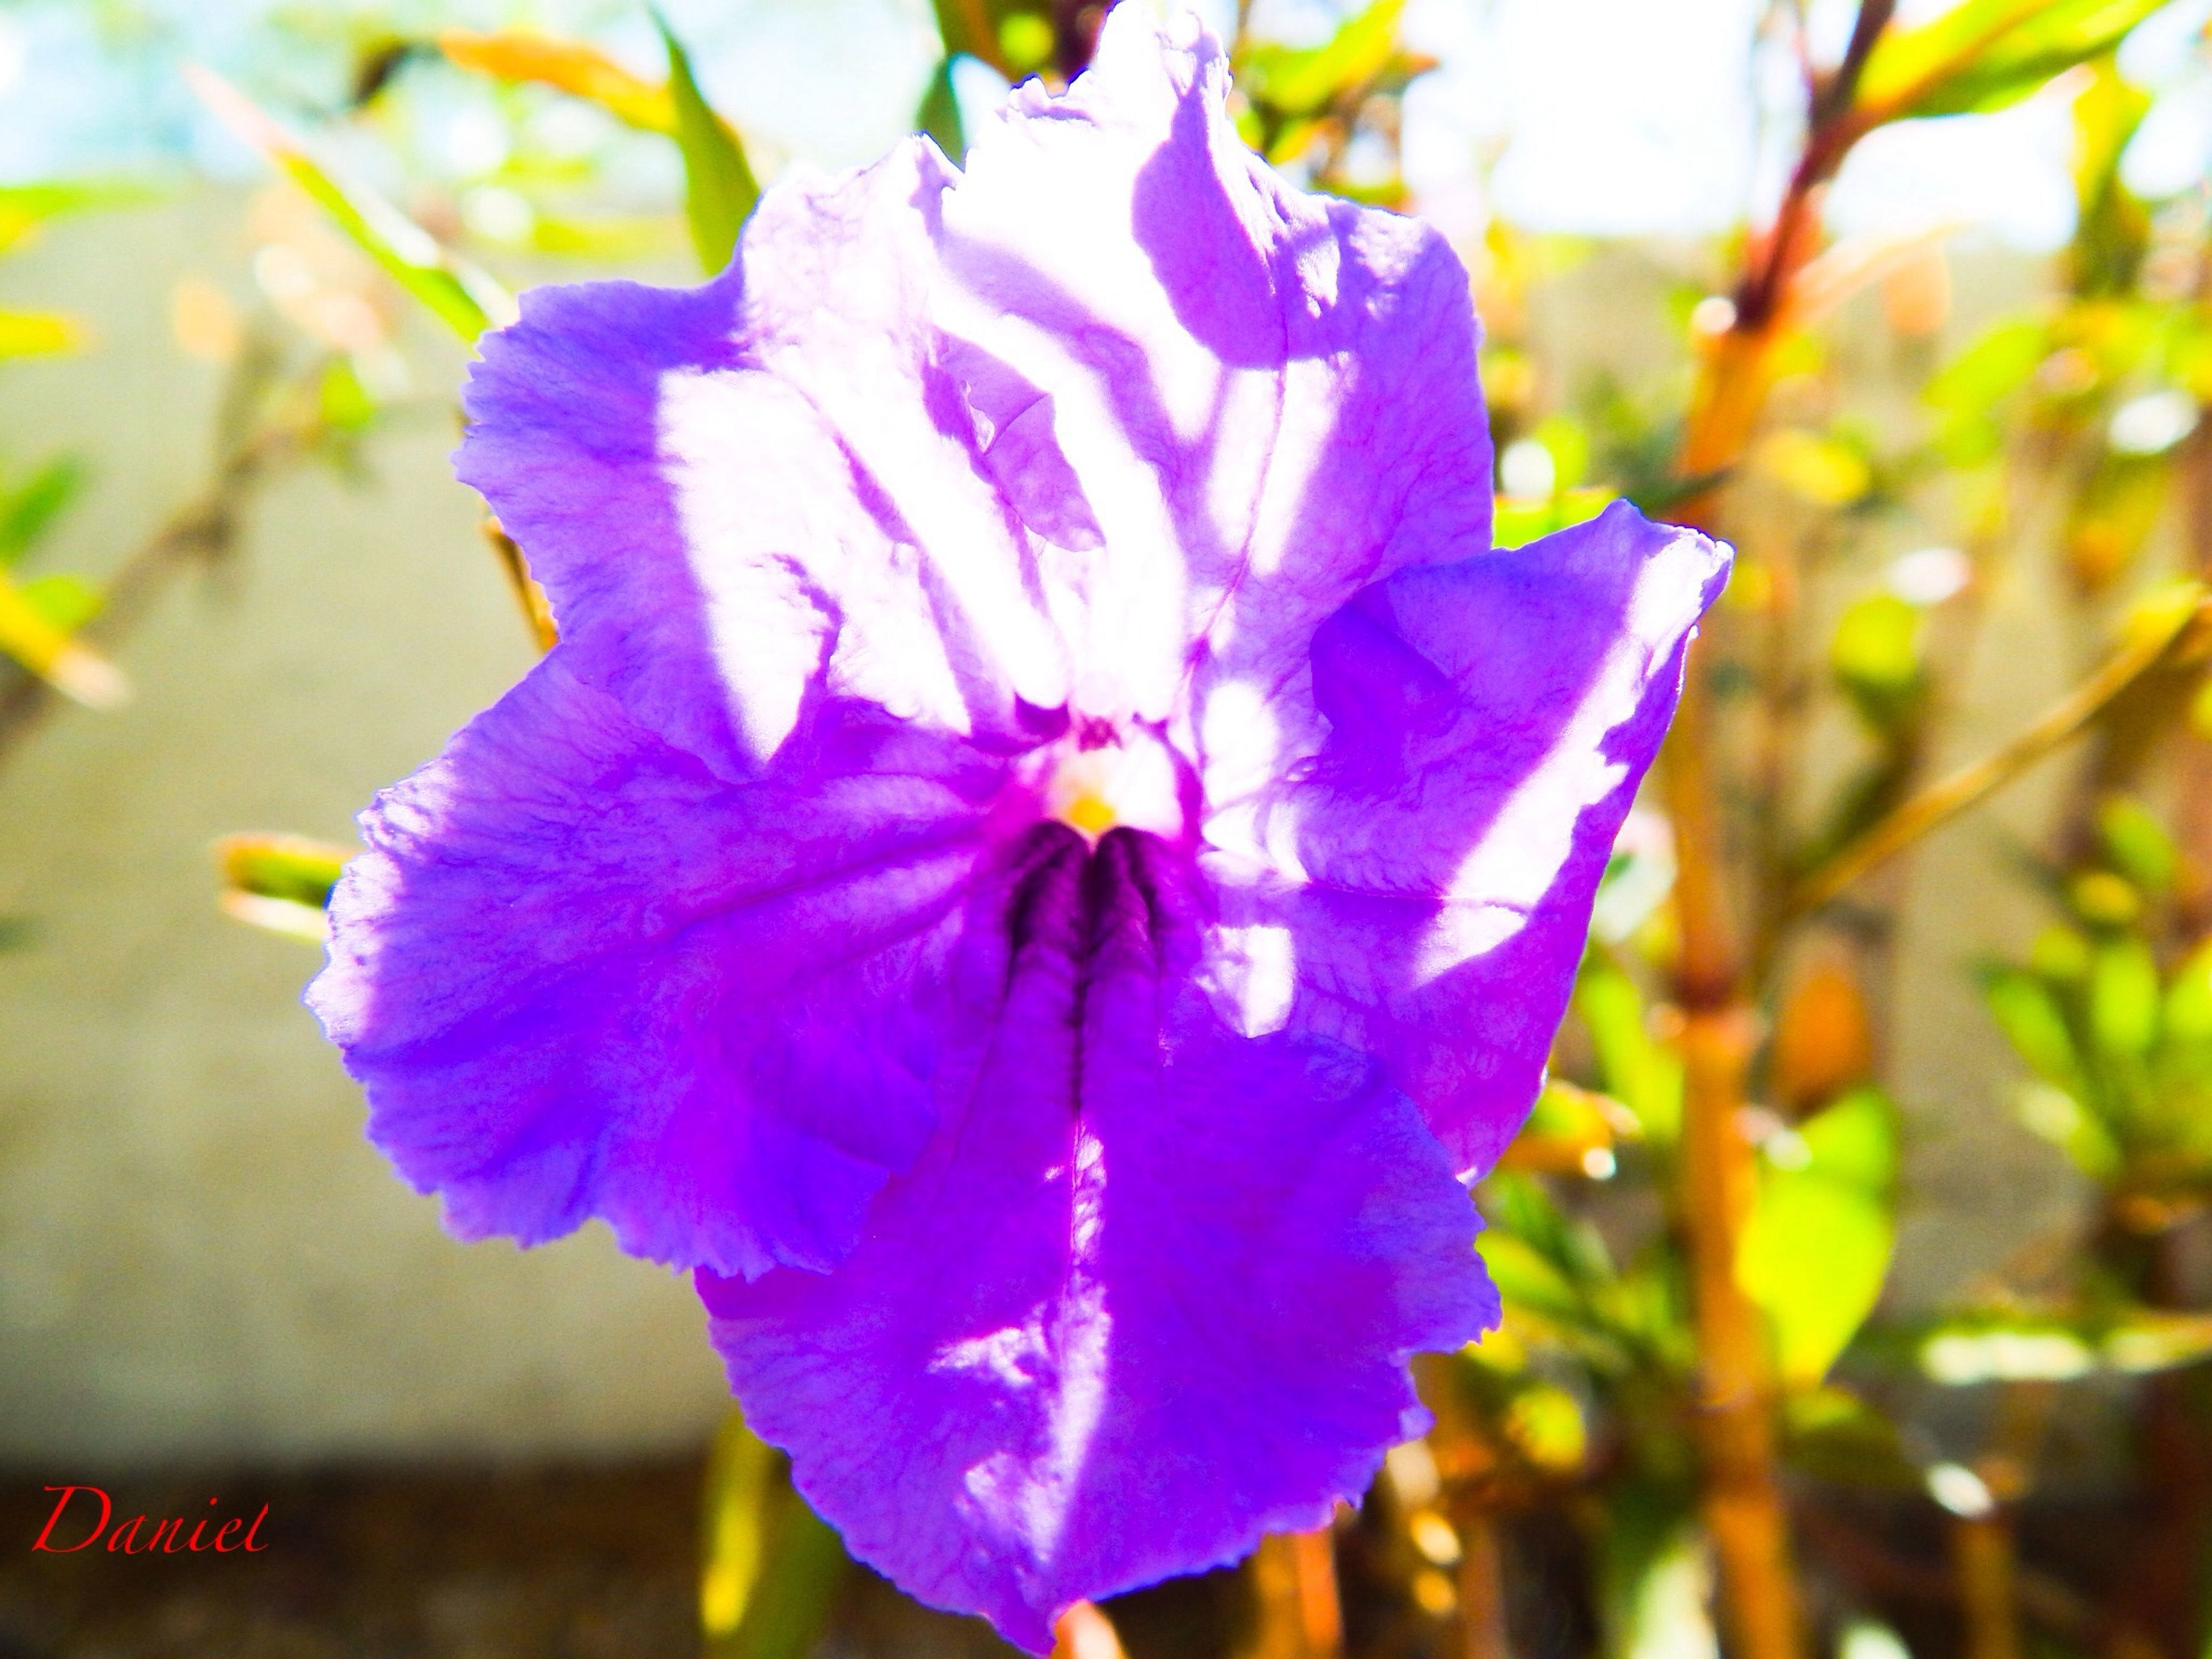 flower, petal, purple, flower head, freshness, fragility, close-up, growth, single flower, beauty in nature, focus on foreground, blooming, nature, in bloom, stamen, pollen, blossom, plant, park - man made space, outdoors